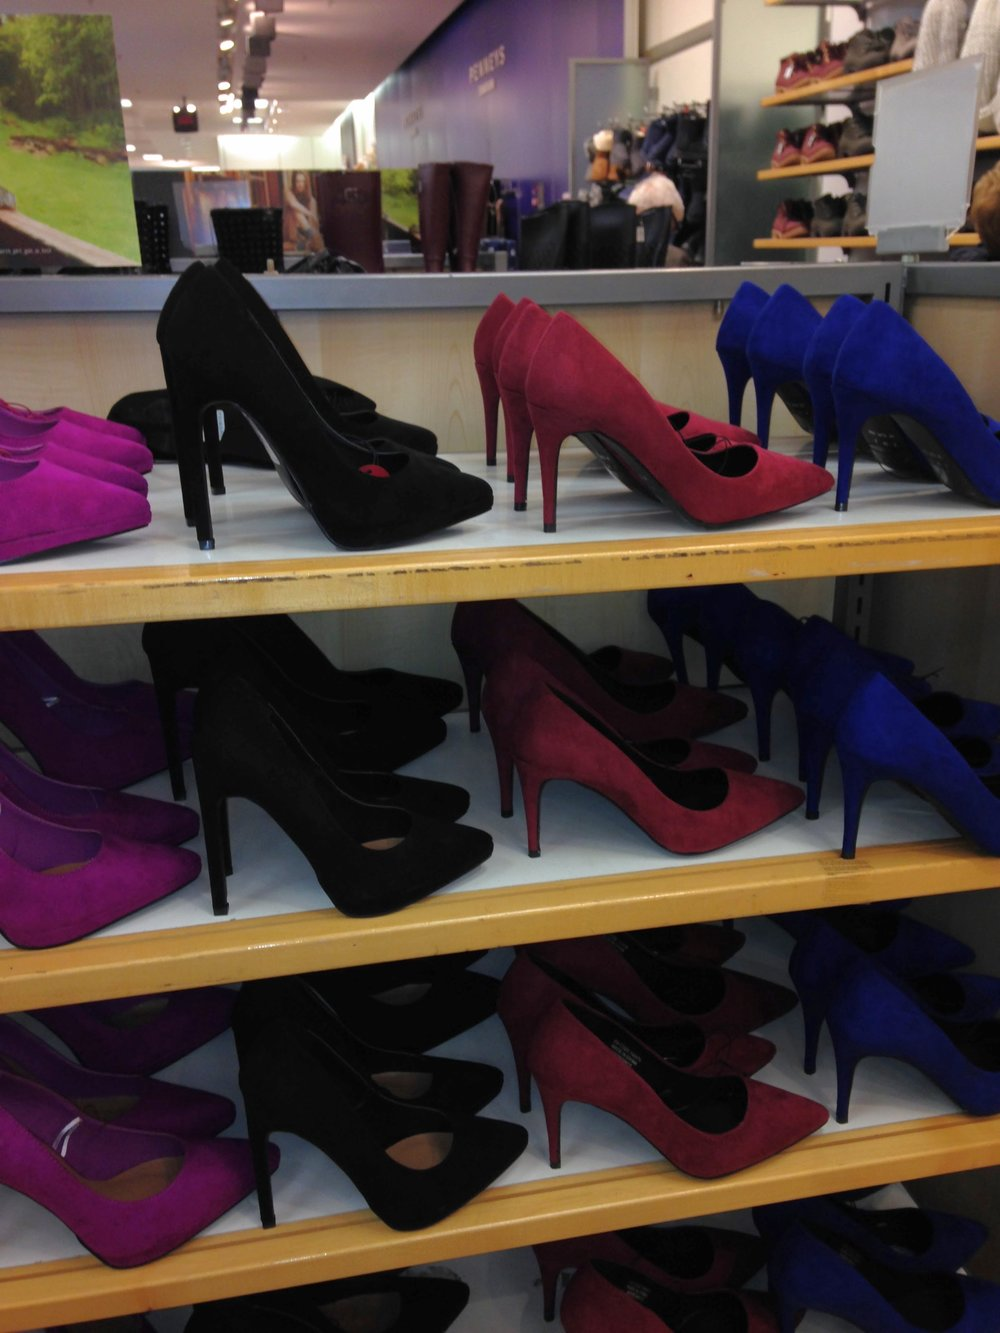 Selection of colourful court shoes from €11.